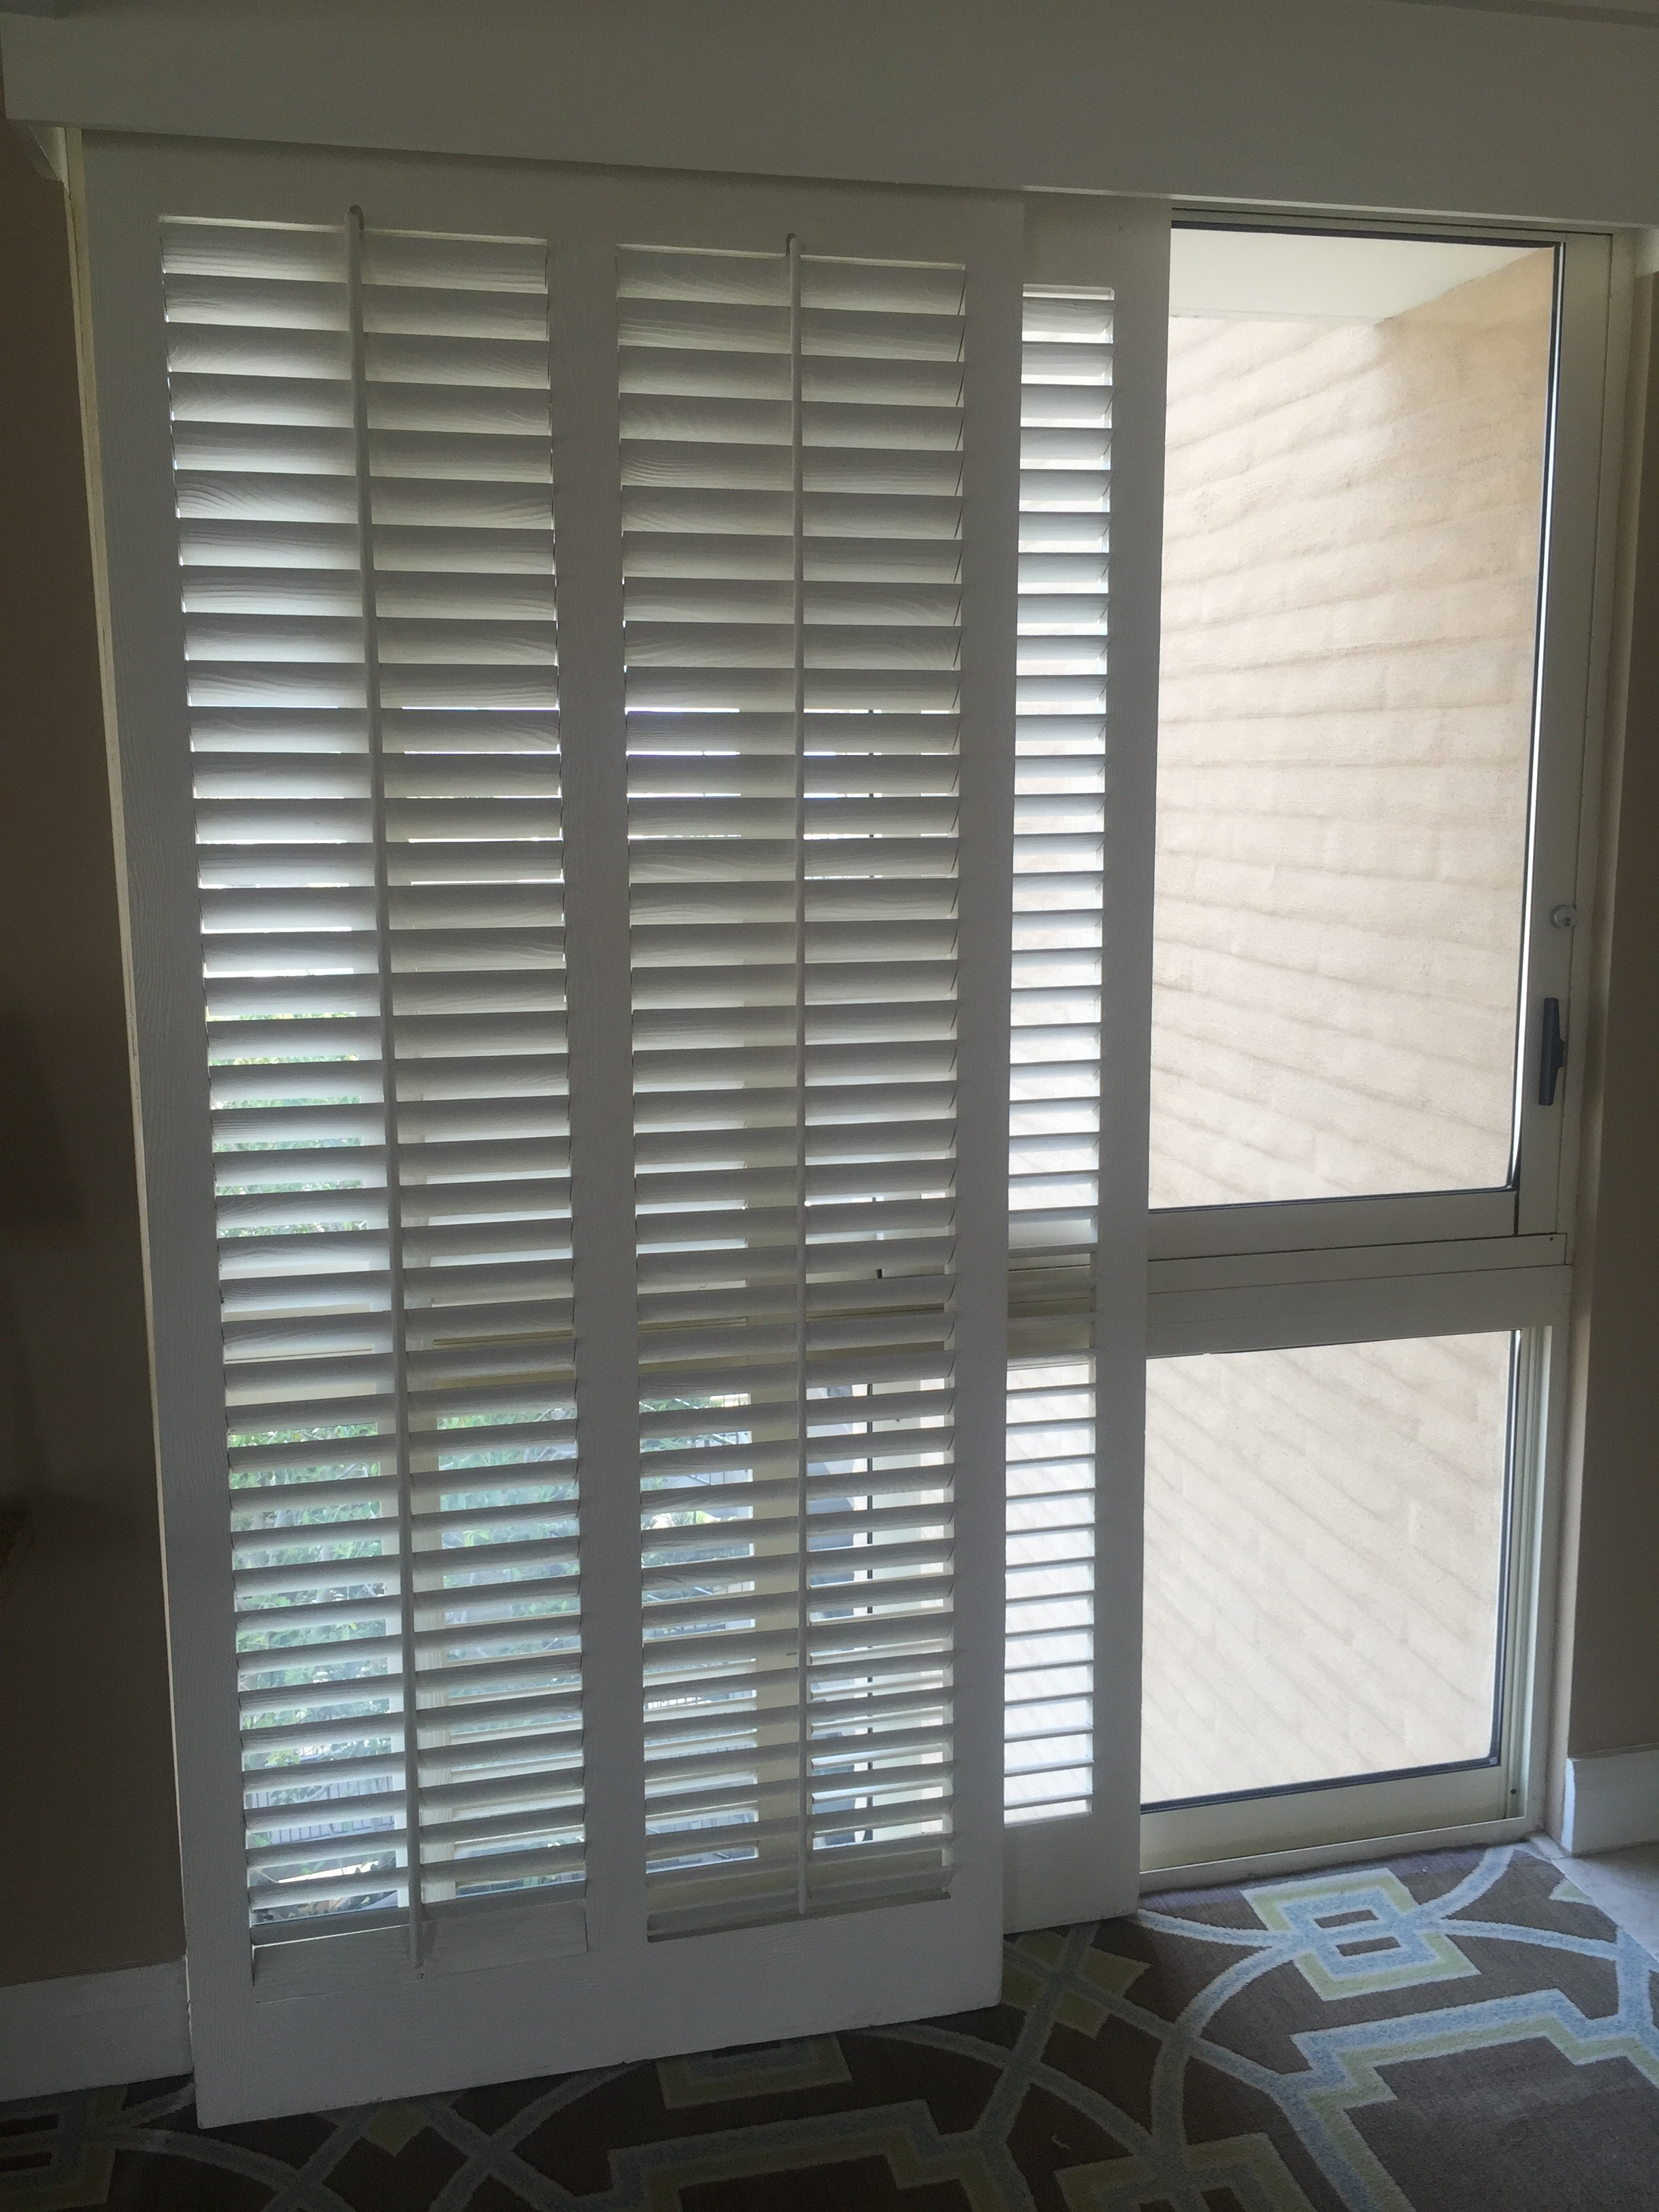 Most People Ociate The Beginnings Of Plantation Shutters With Rise Homes In Deep South Early 1800s